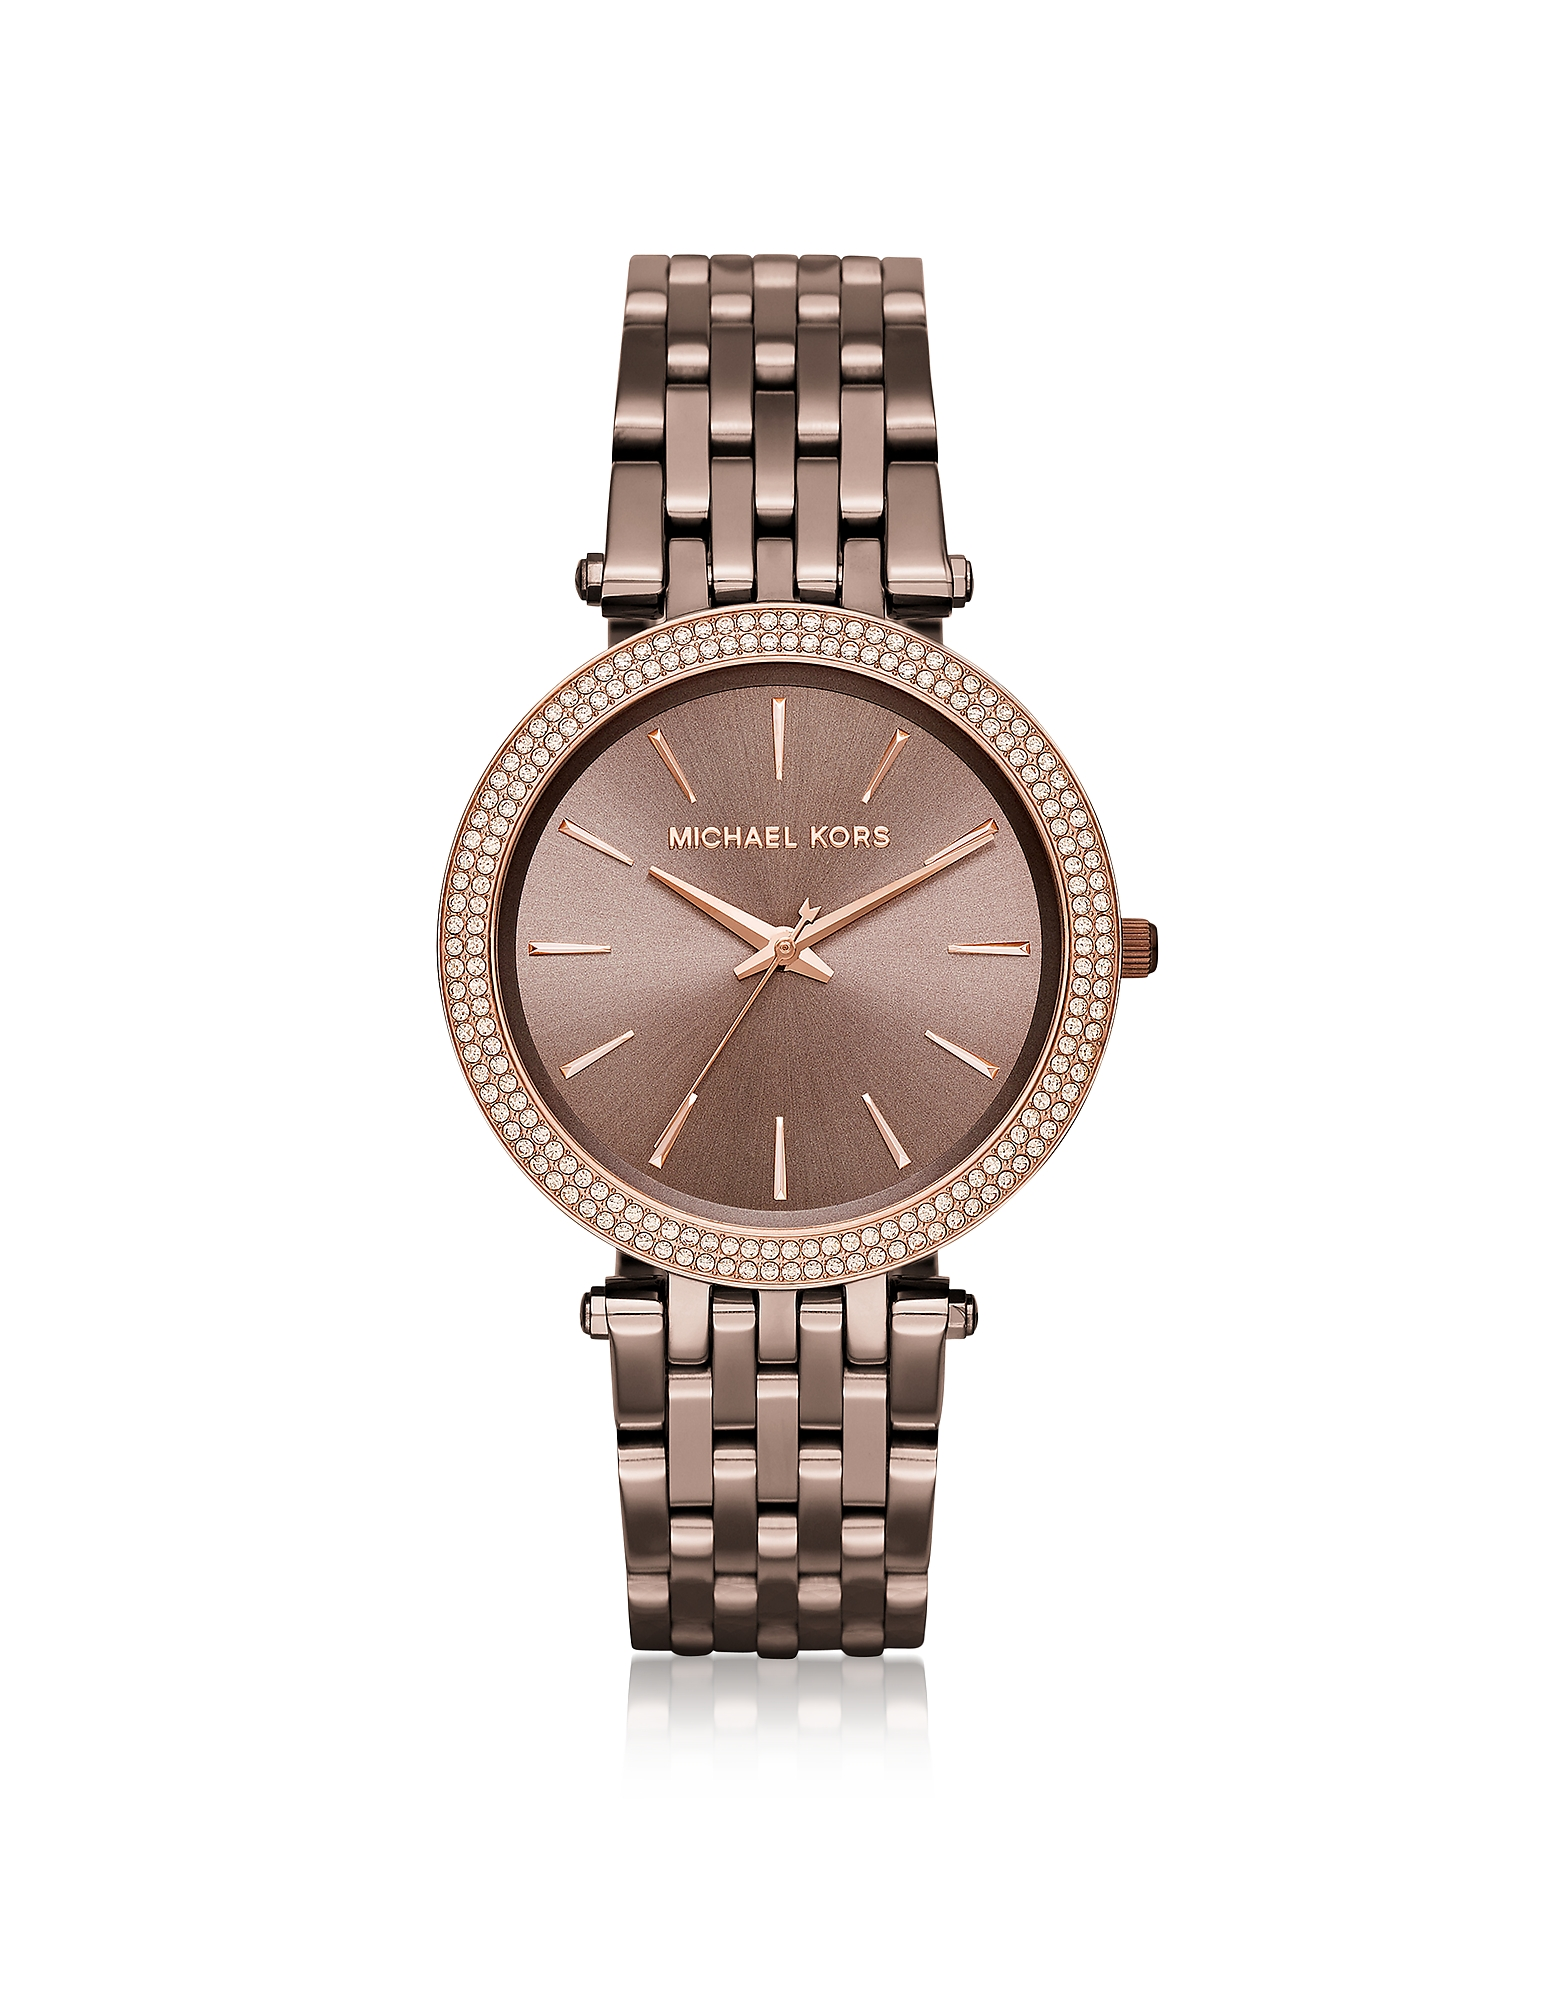 Michael Kors Women's Watches, Darci PVD Plated Stainless Steel Women's Watch